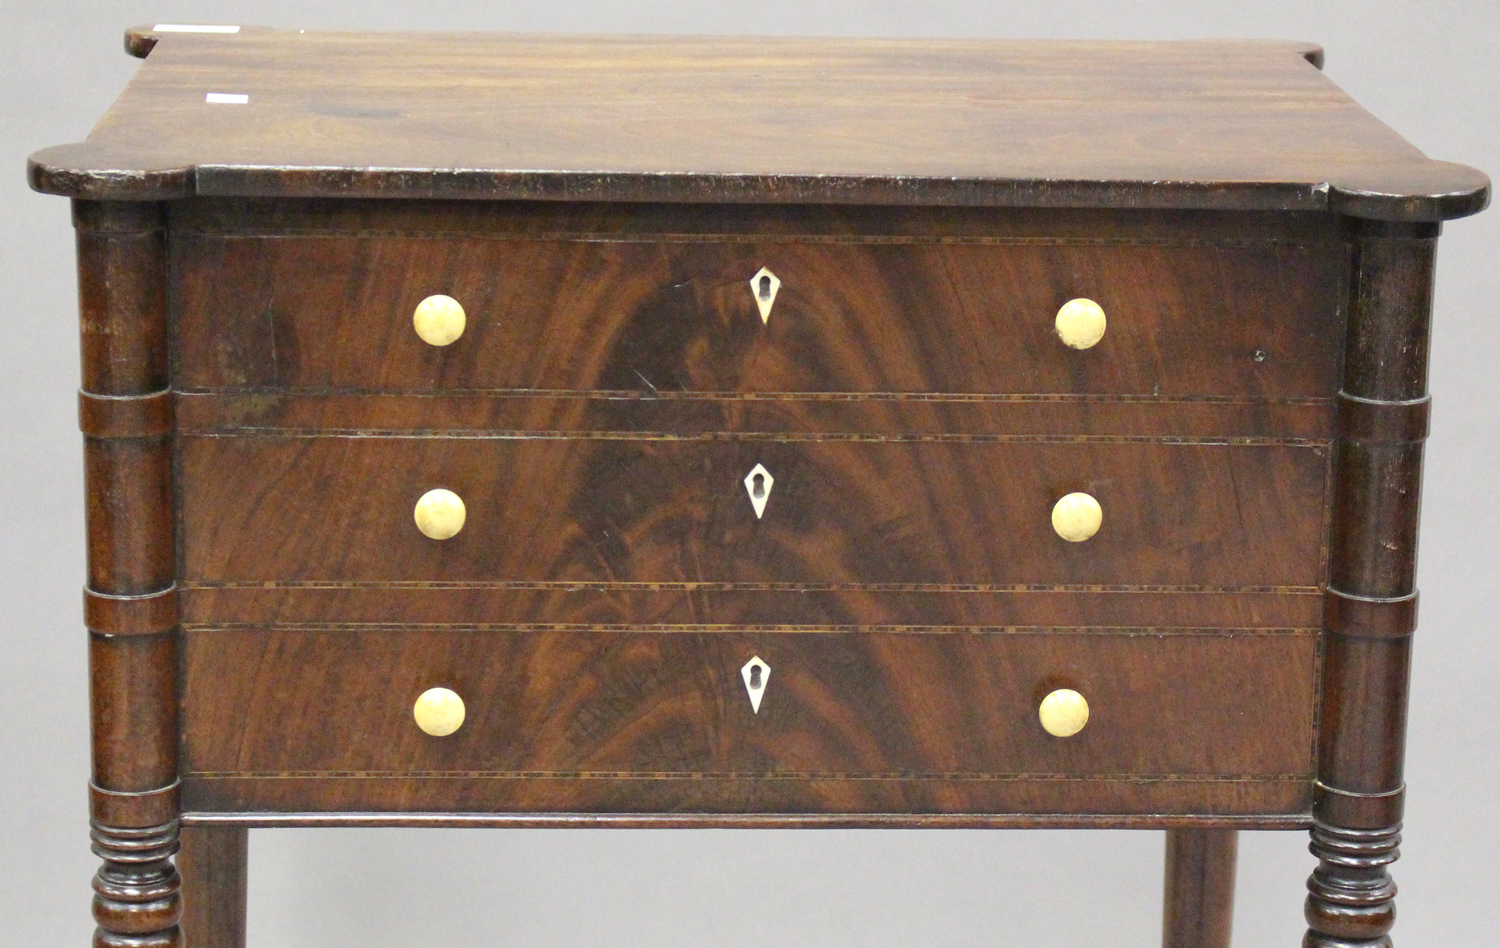 A George IV figured mahogany side table with projecting corners, the two drawers with bone handles - Image 3 of 8